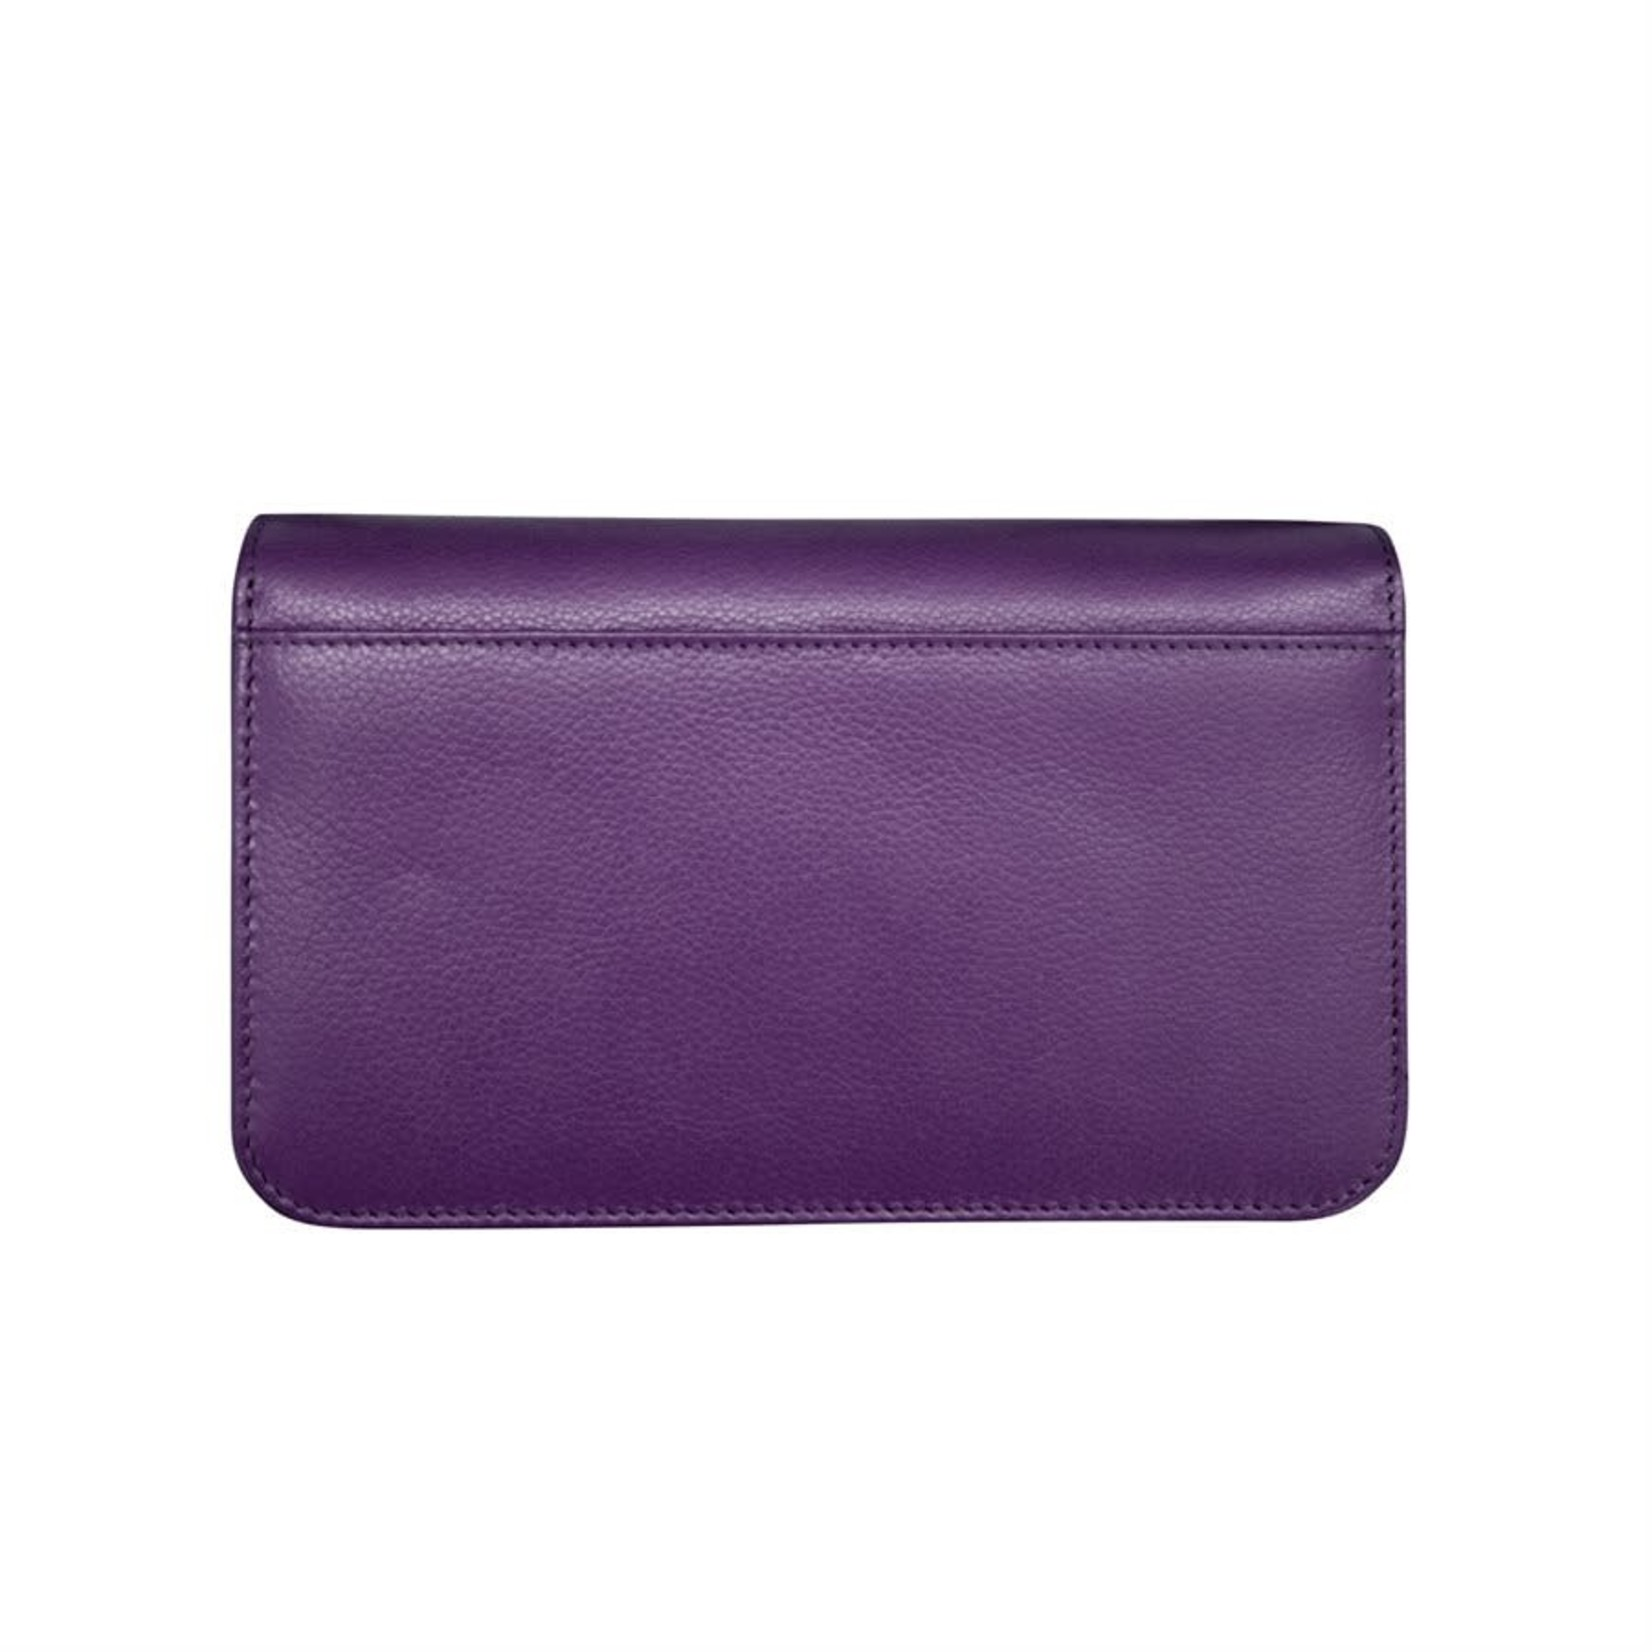 Leather Handbags and Accessories 6517 Purple - RFID Smartphone Crossbody